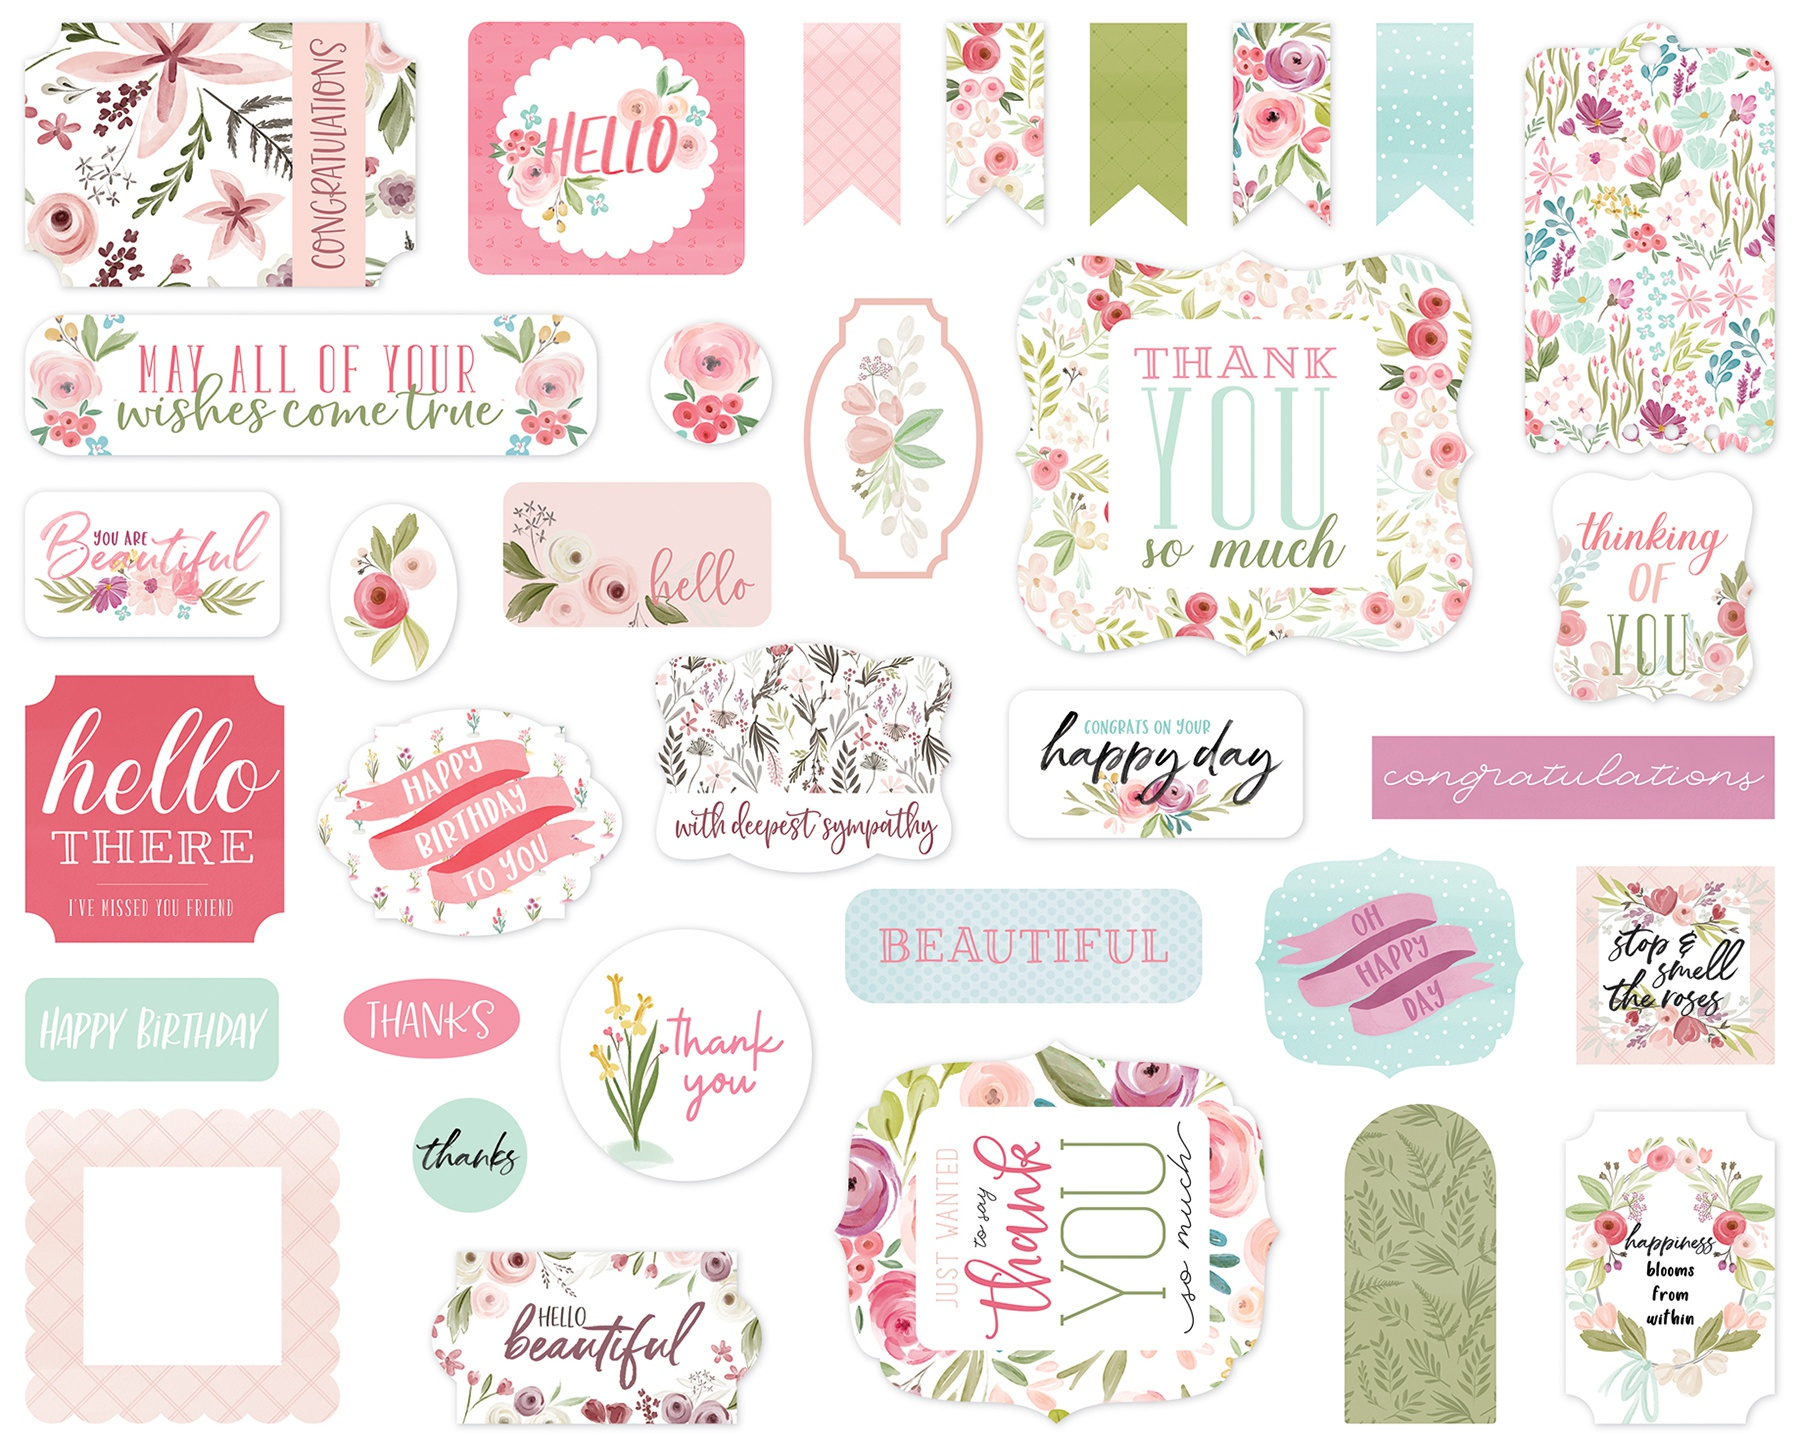 Carta Bella Cardstock Ephemera 33/Pkg-Icons, Flora No. 3